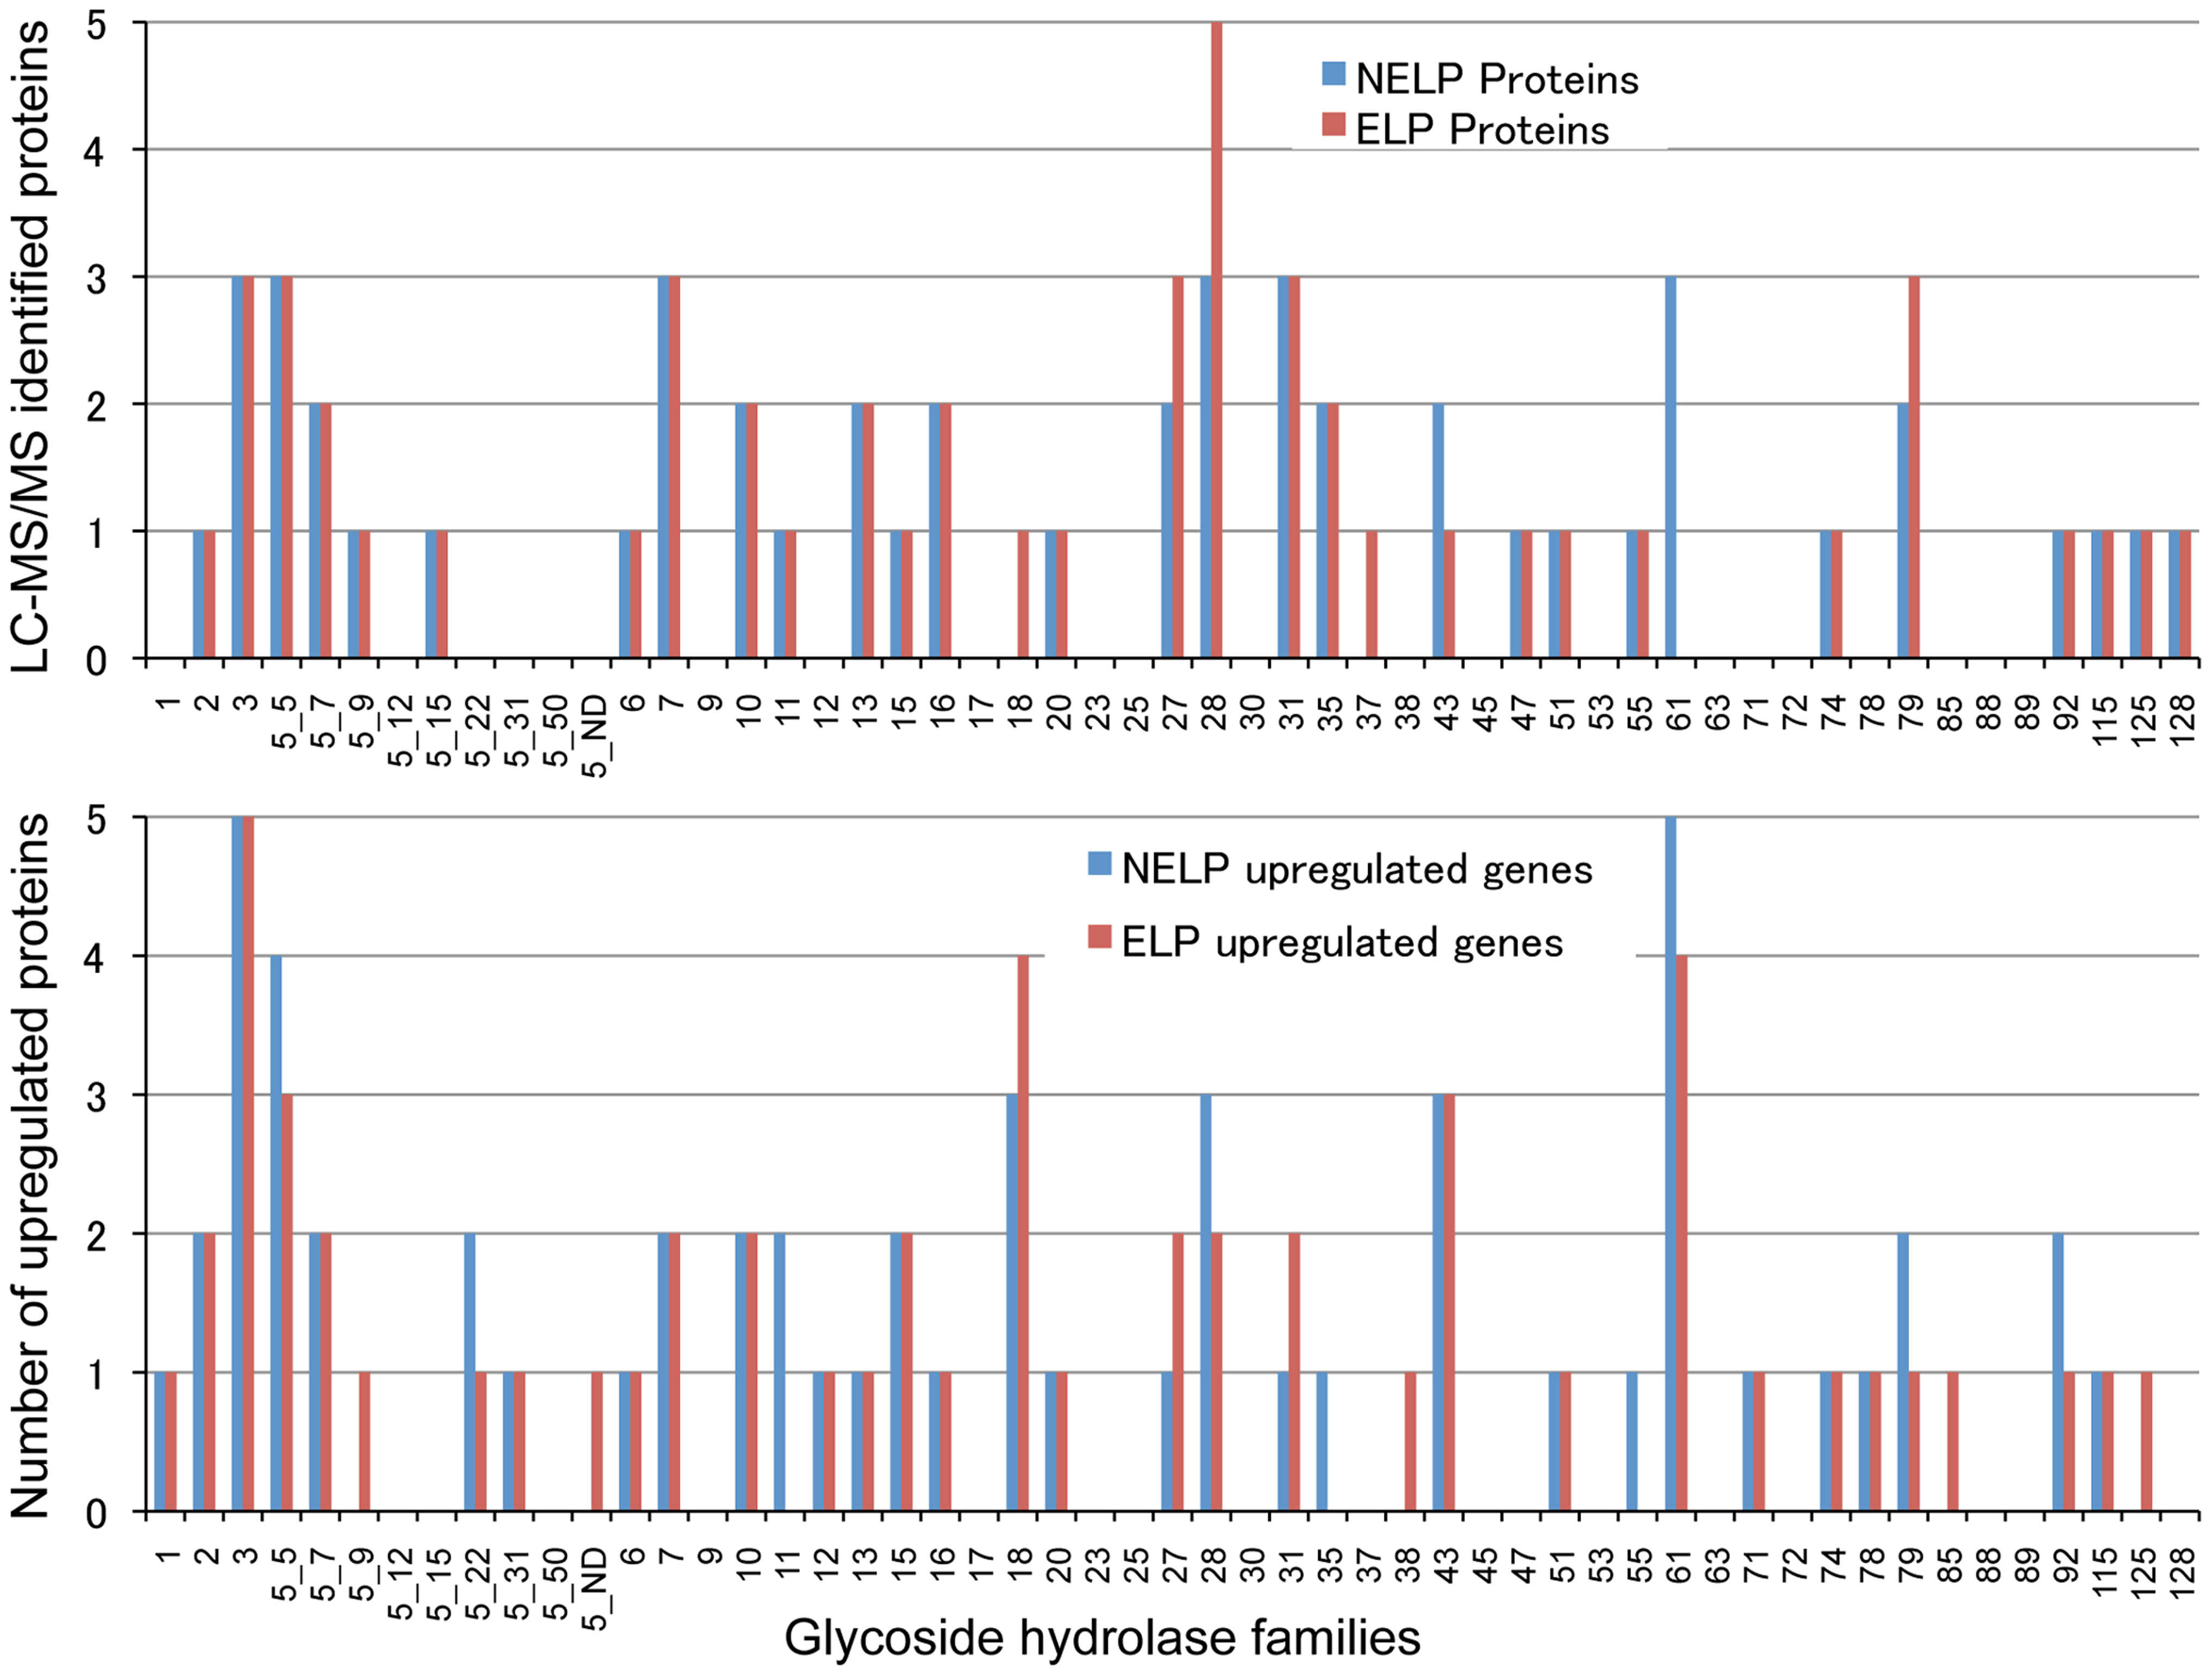 Glycoside hydrolase encoding genes show similar patterns of expression in media containing freshly ground and non-extracted loblolly pine wood (NELP) relative to the same substrate but extracted with acetone (ELP) to remove pitch and resins.